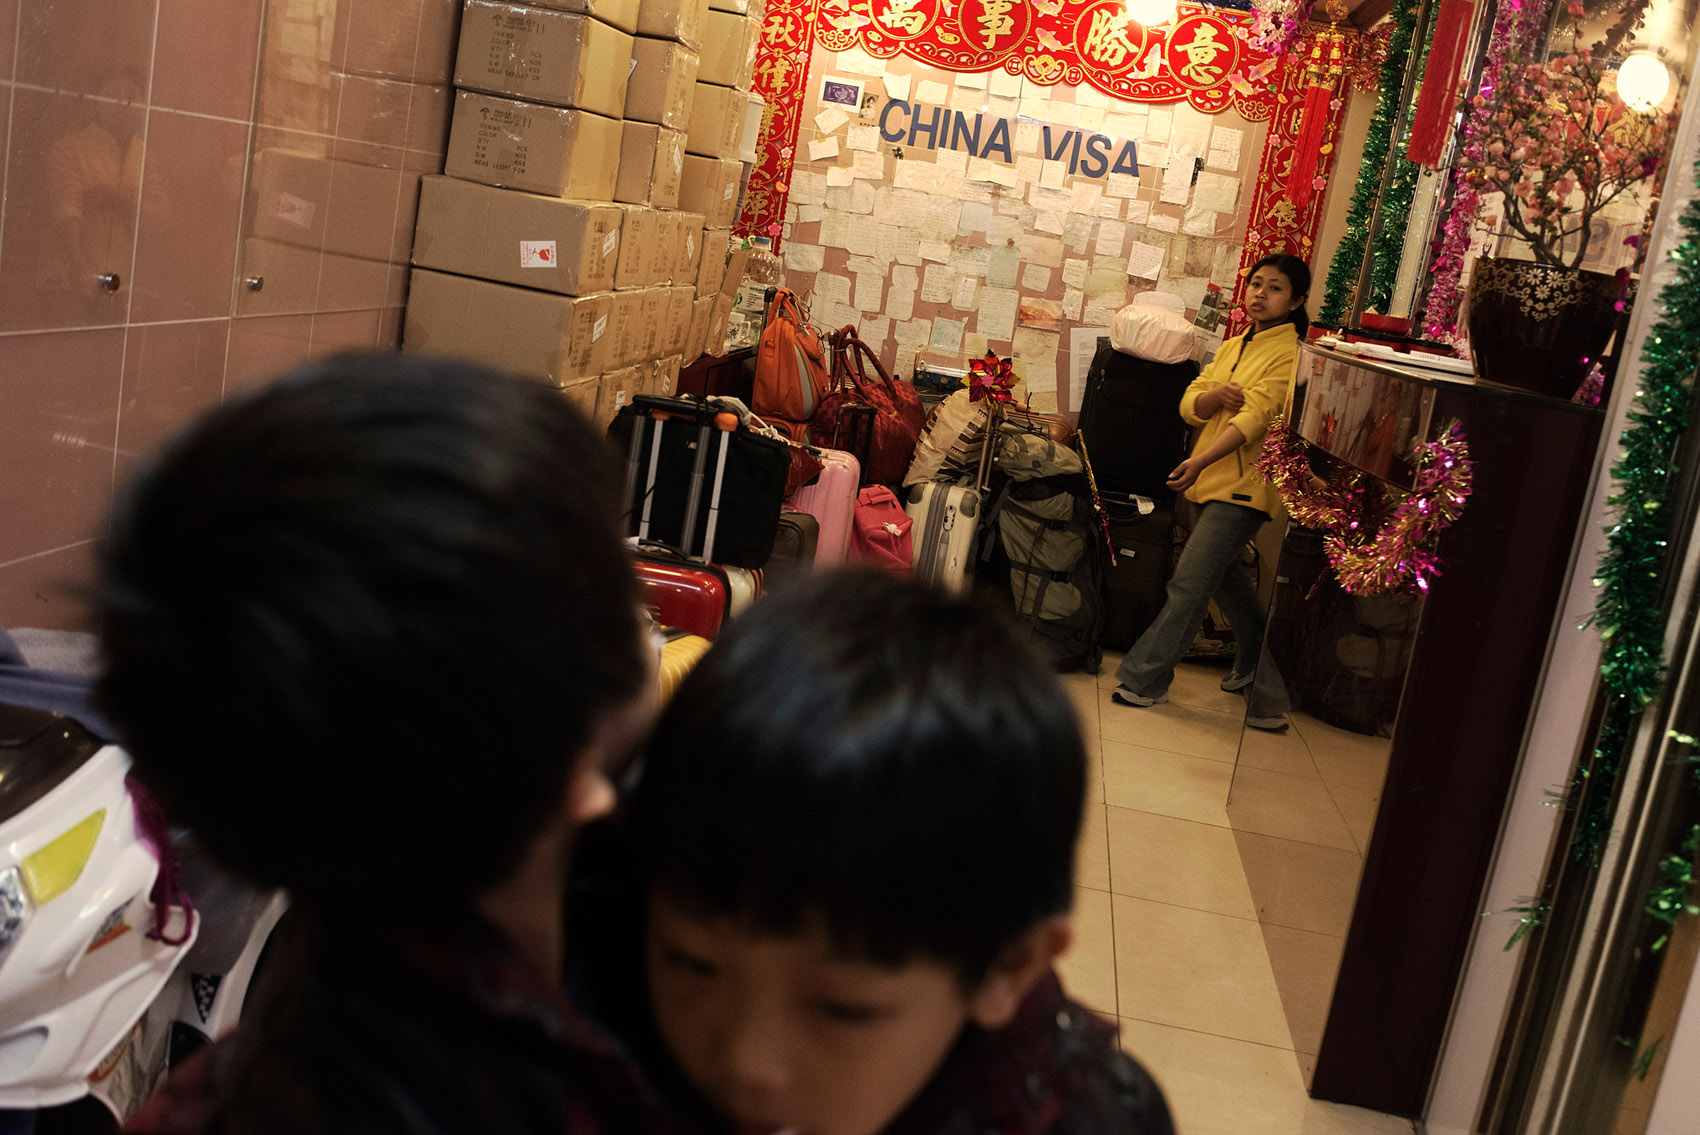 """Kids playing the lobby of a Chungking Mansions guest House. On its wall a """"china visa"""" sign and numerous notes left by guests seeking information, praising the guest house. Many travelers heading to China do a stopover in Hong Kong and stay at the Chungking Mansions where some cheap guest houses double as visa agency."""